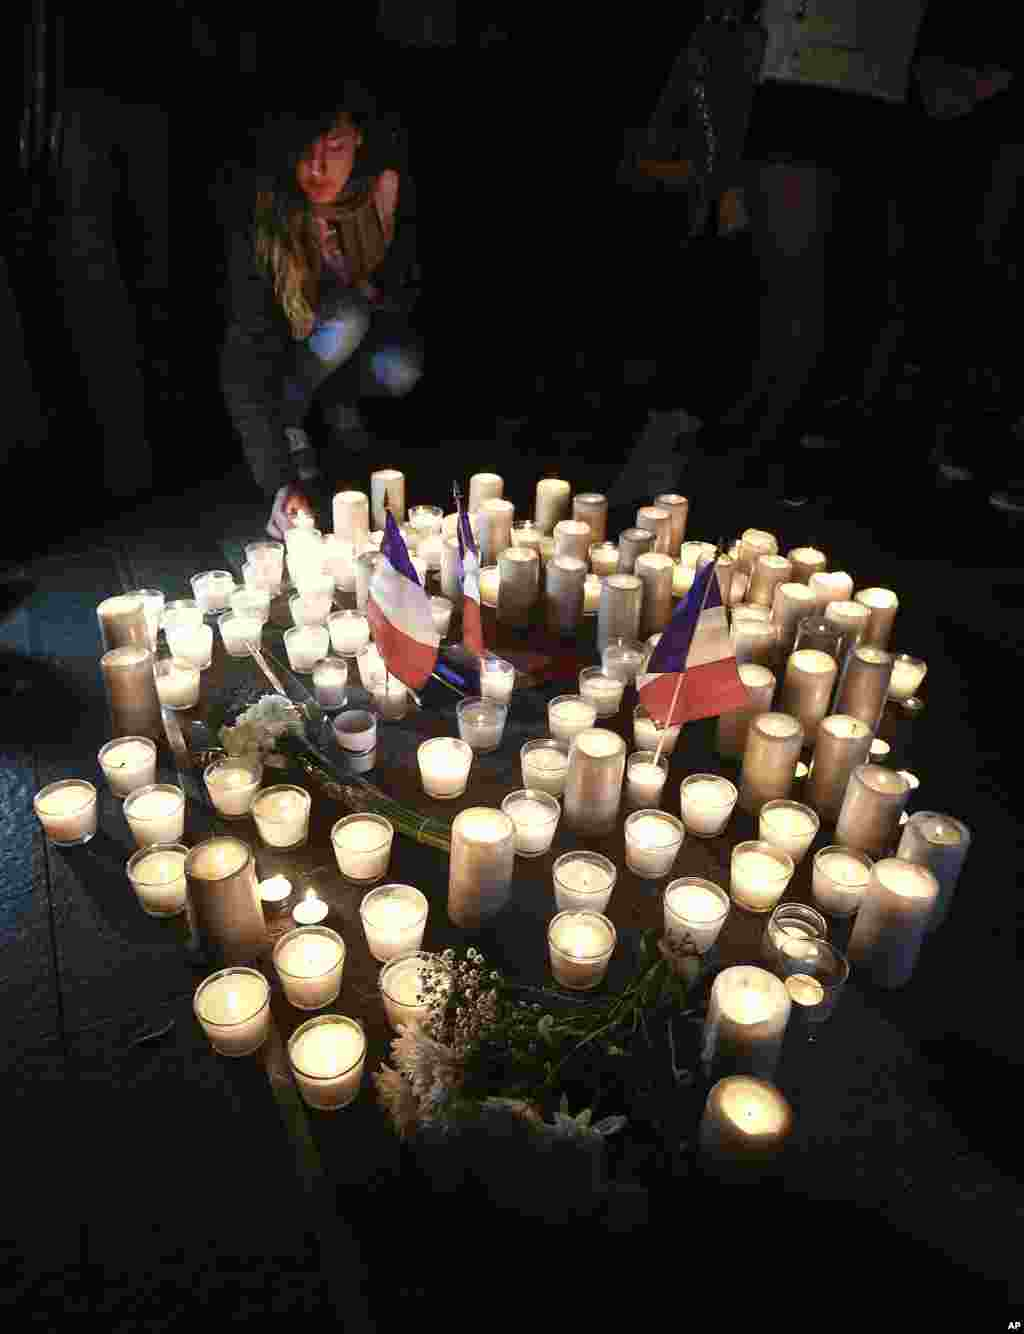 A young woman places candles a circle during a vigil in a tribute to the victims of the Bastille Day attack, in Sydney, Australia on July 15, 2016.